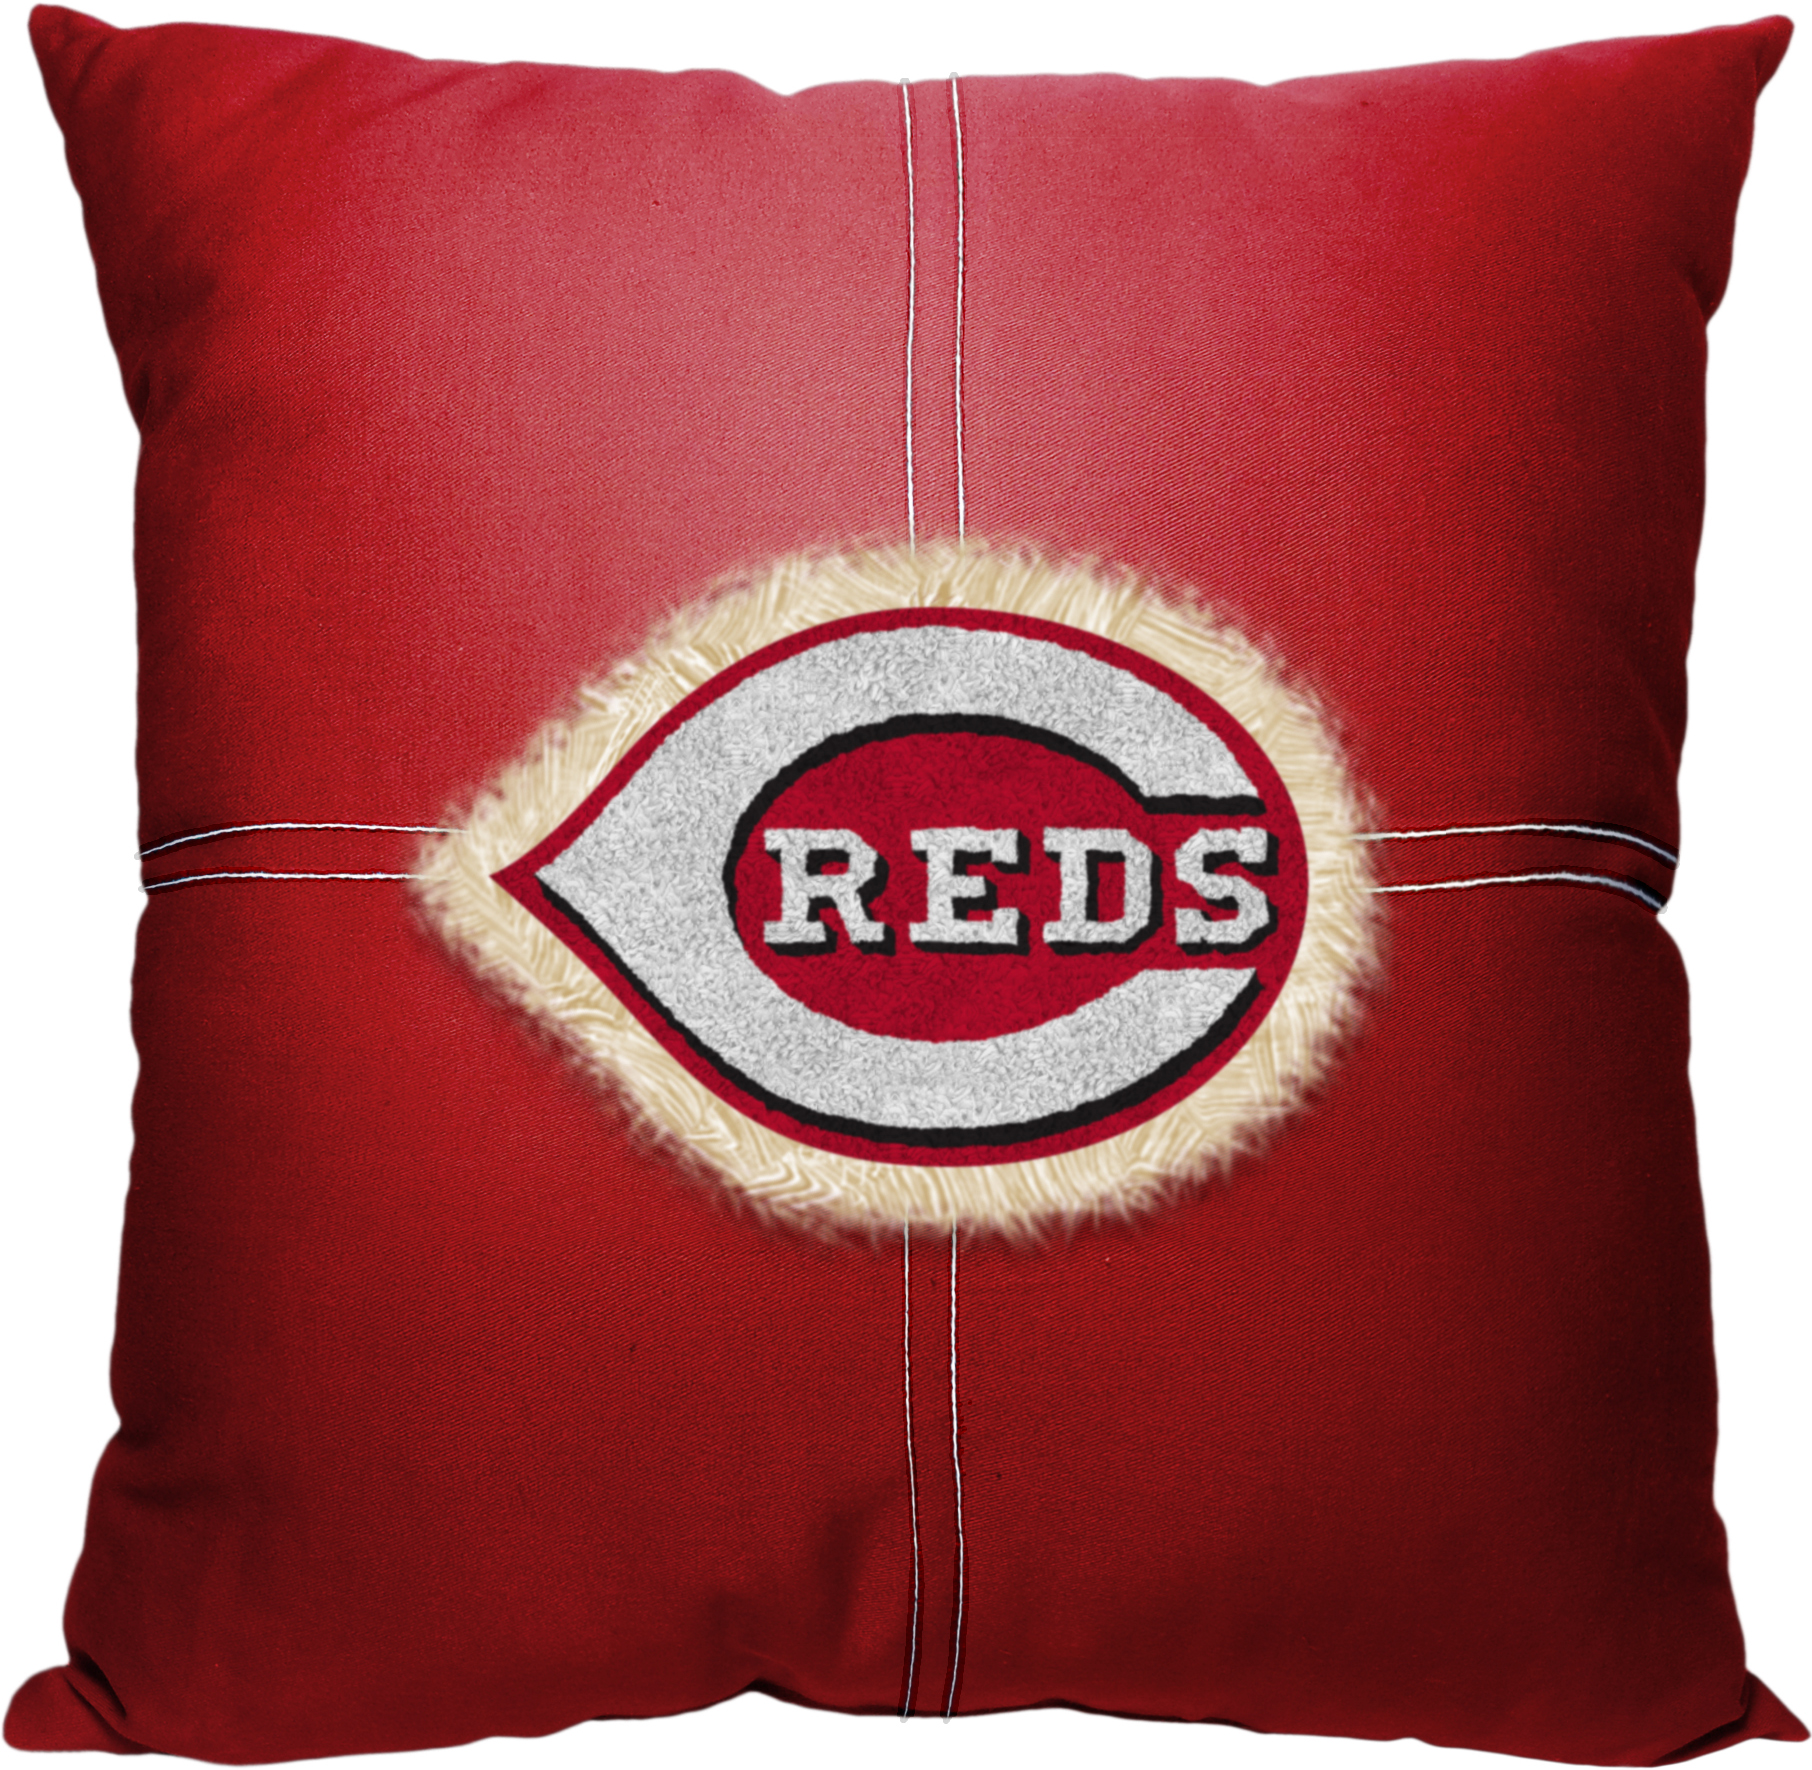 E105349 Northwest MLB Cincinnati Reds Letterman Pillow